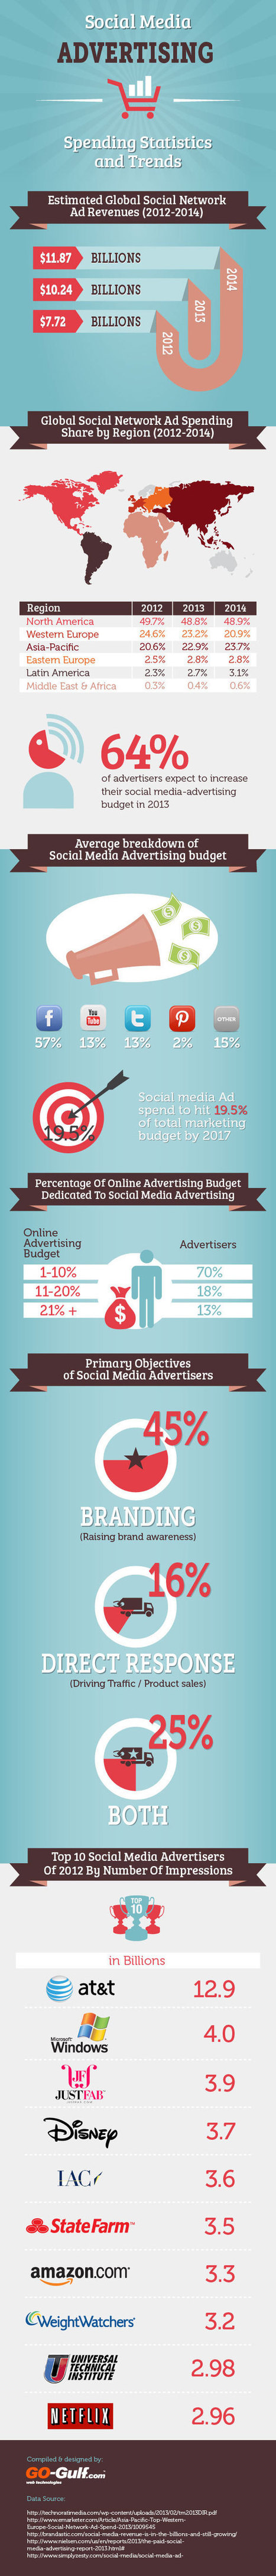 Social media advertising [infographic] | Social Media Journal | Scoop.it